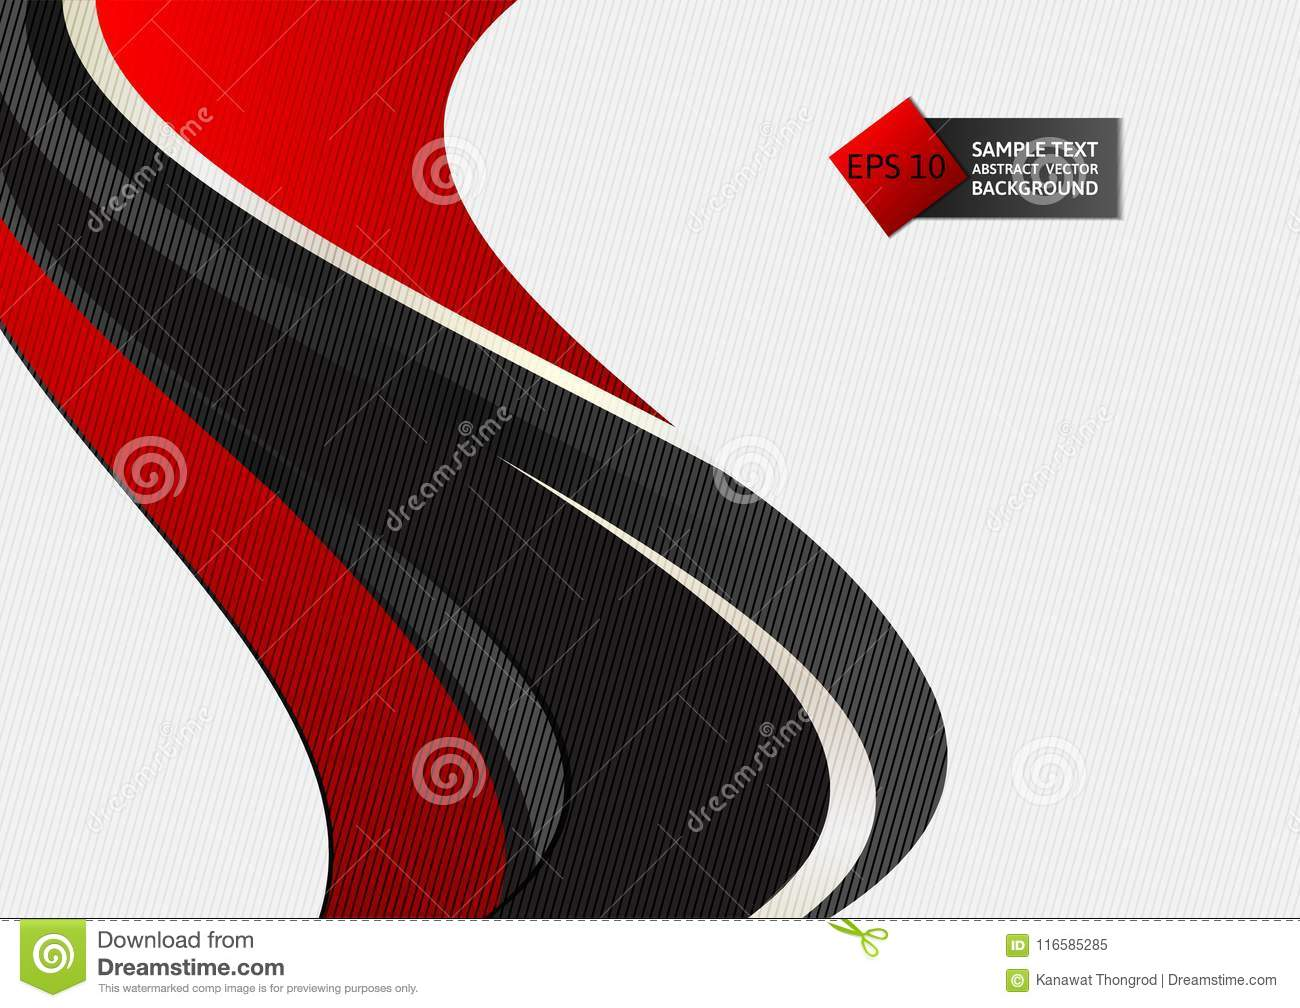 Red and black color wave abstract background Vector illustration